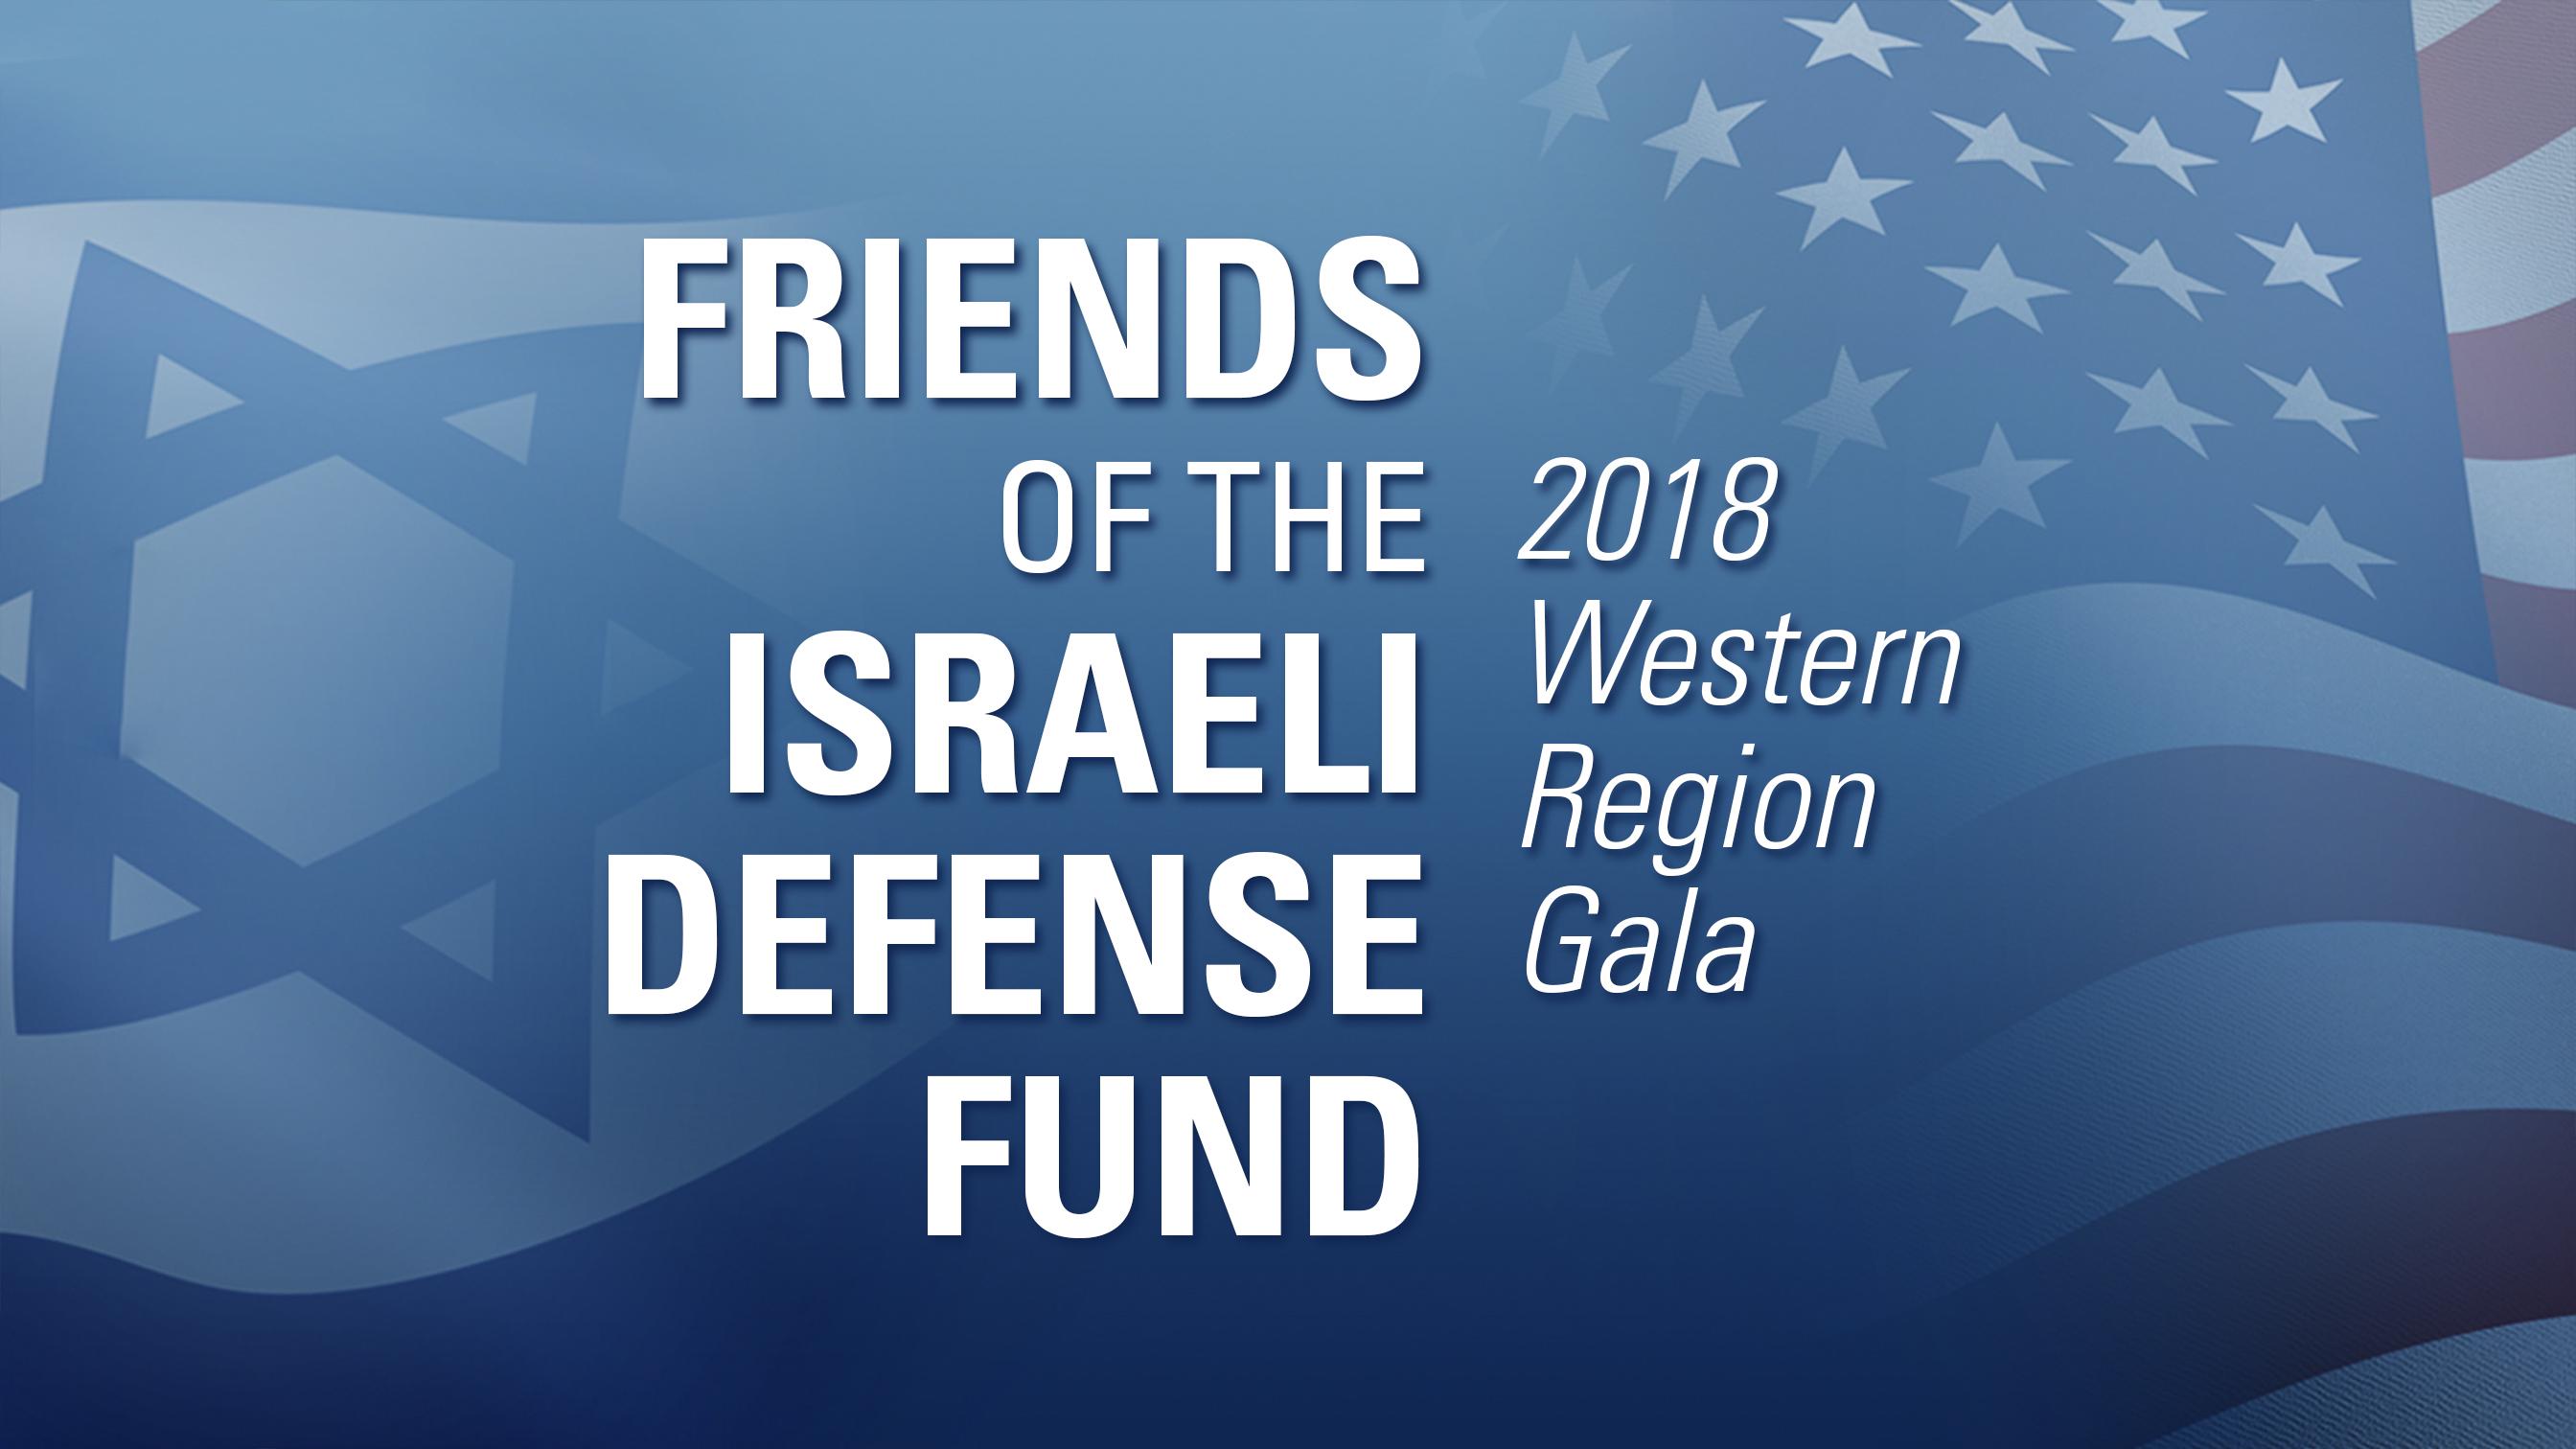 Friends of the Israeli Defense Fund